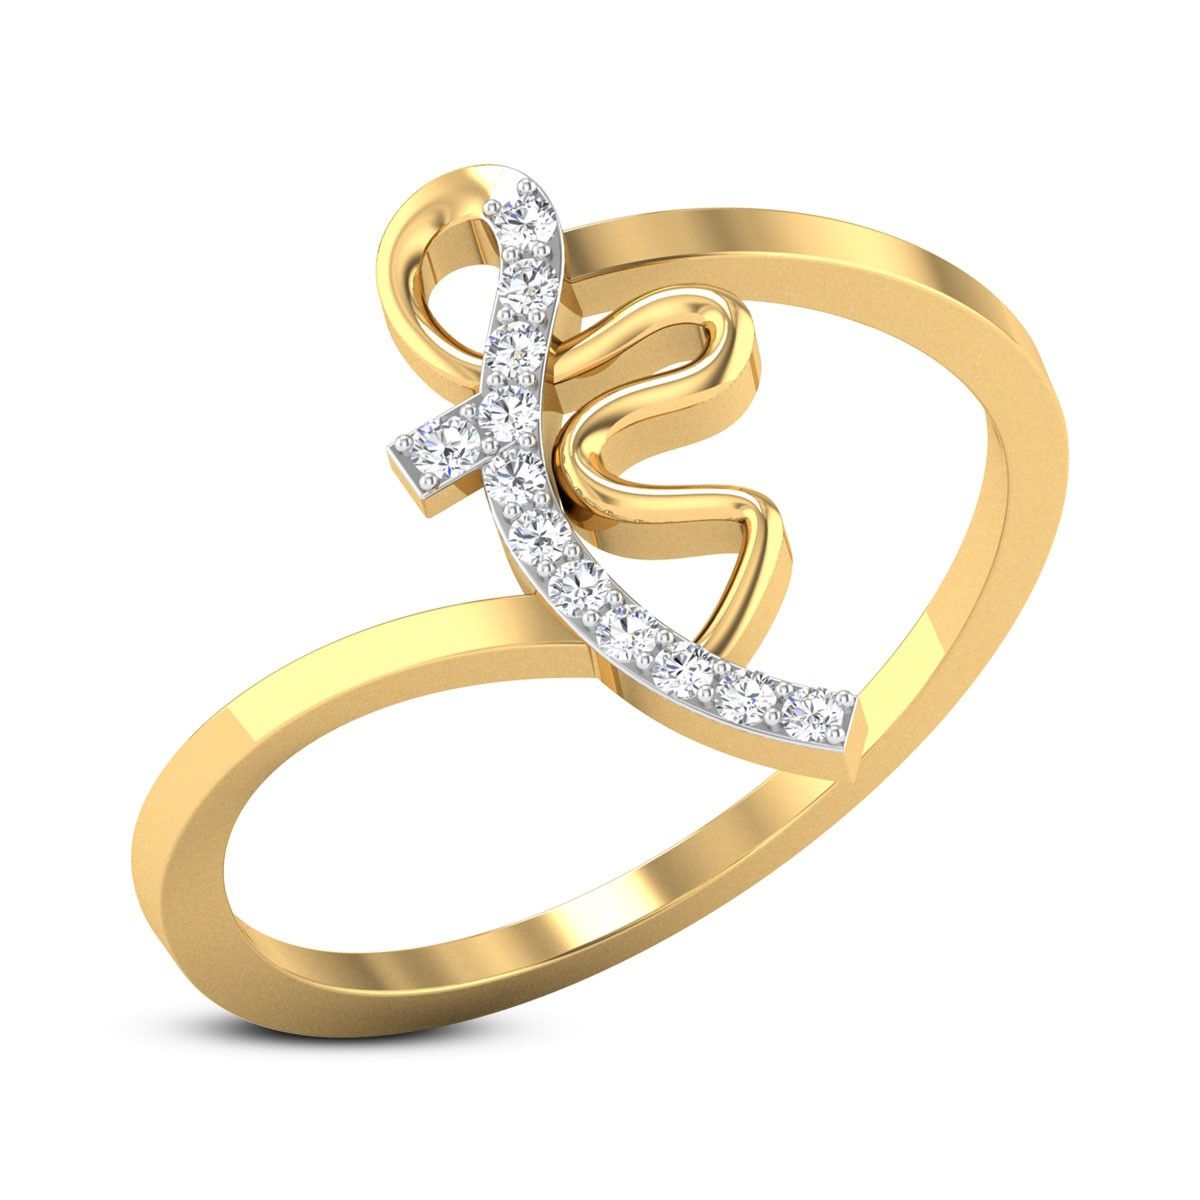 Buy Lisa Diamond Ring in 2.24 Grams Gold Online